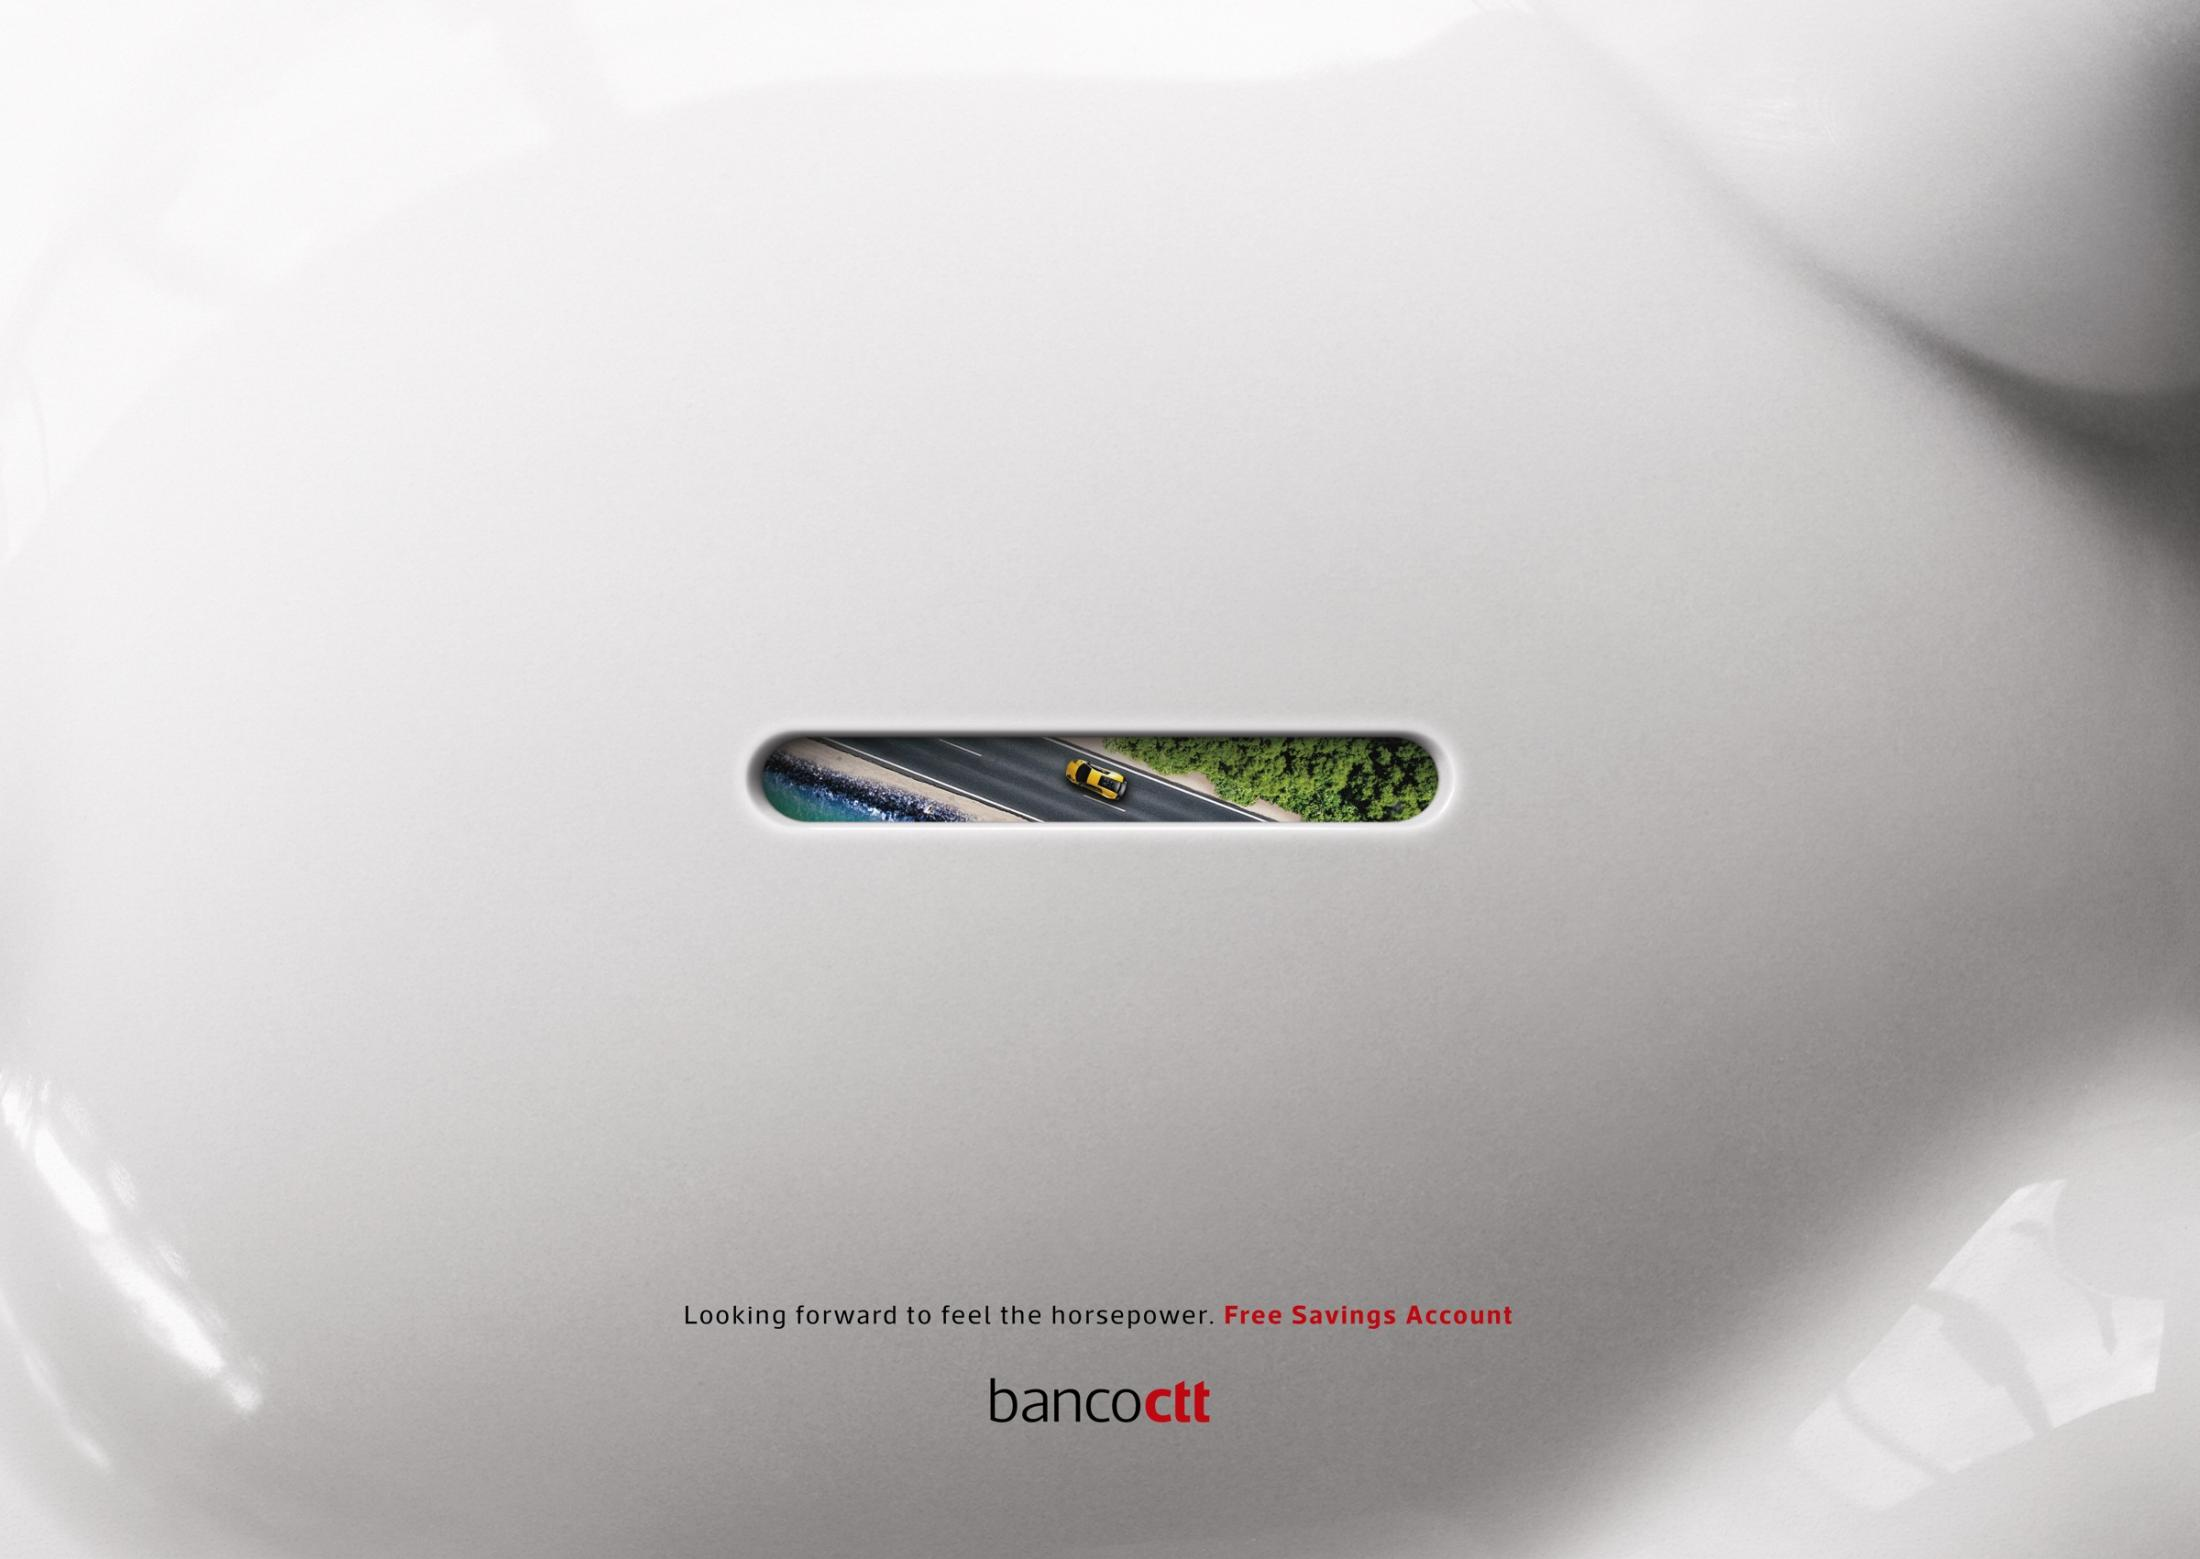 Banco CTT Print Ad - Through the Piggy Hole - Car